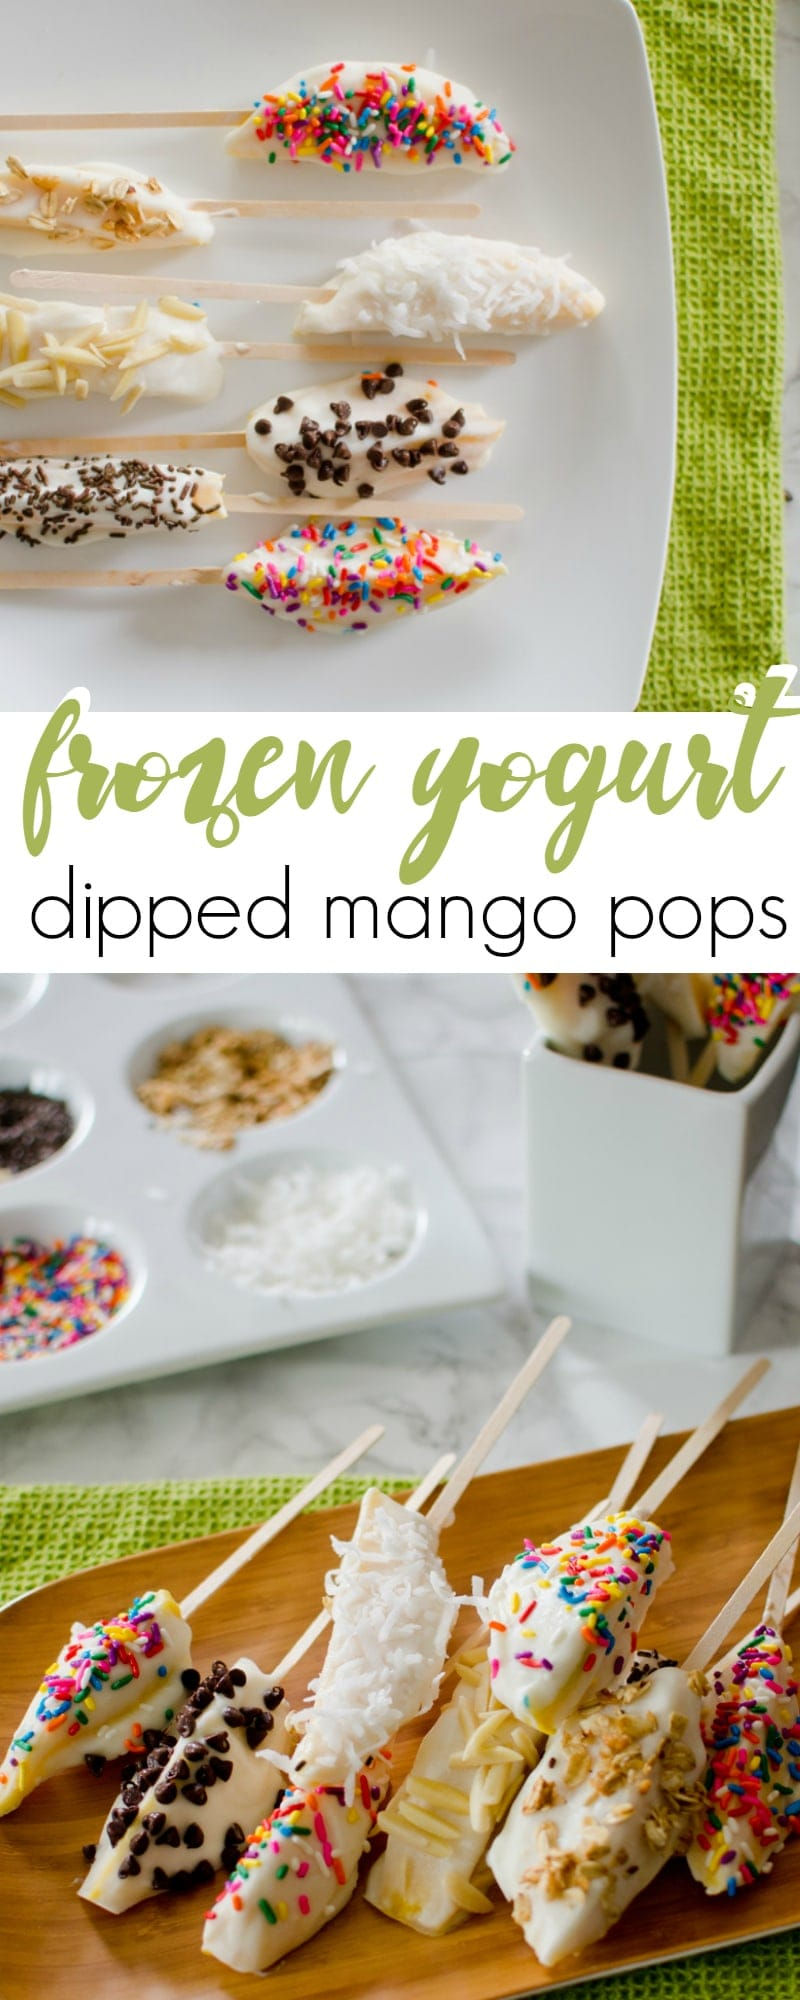 frozen yogurt dipped mango pops